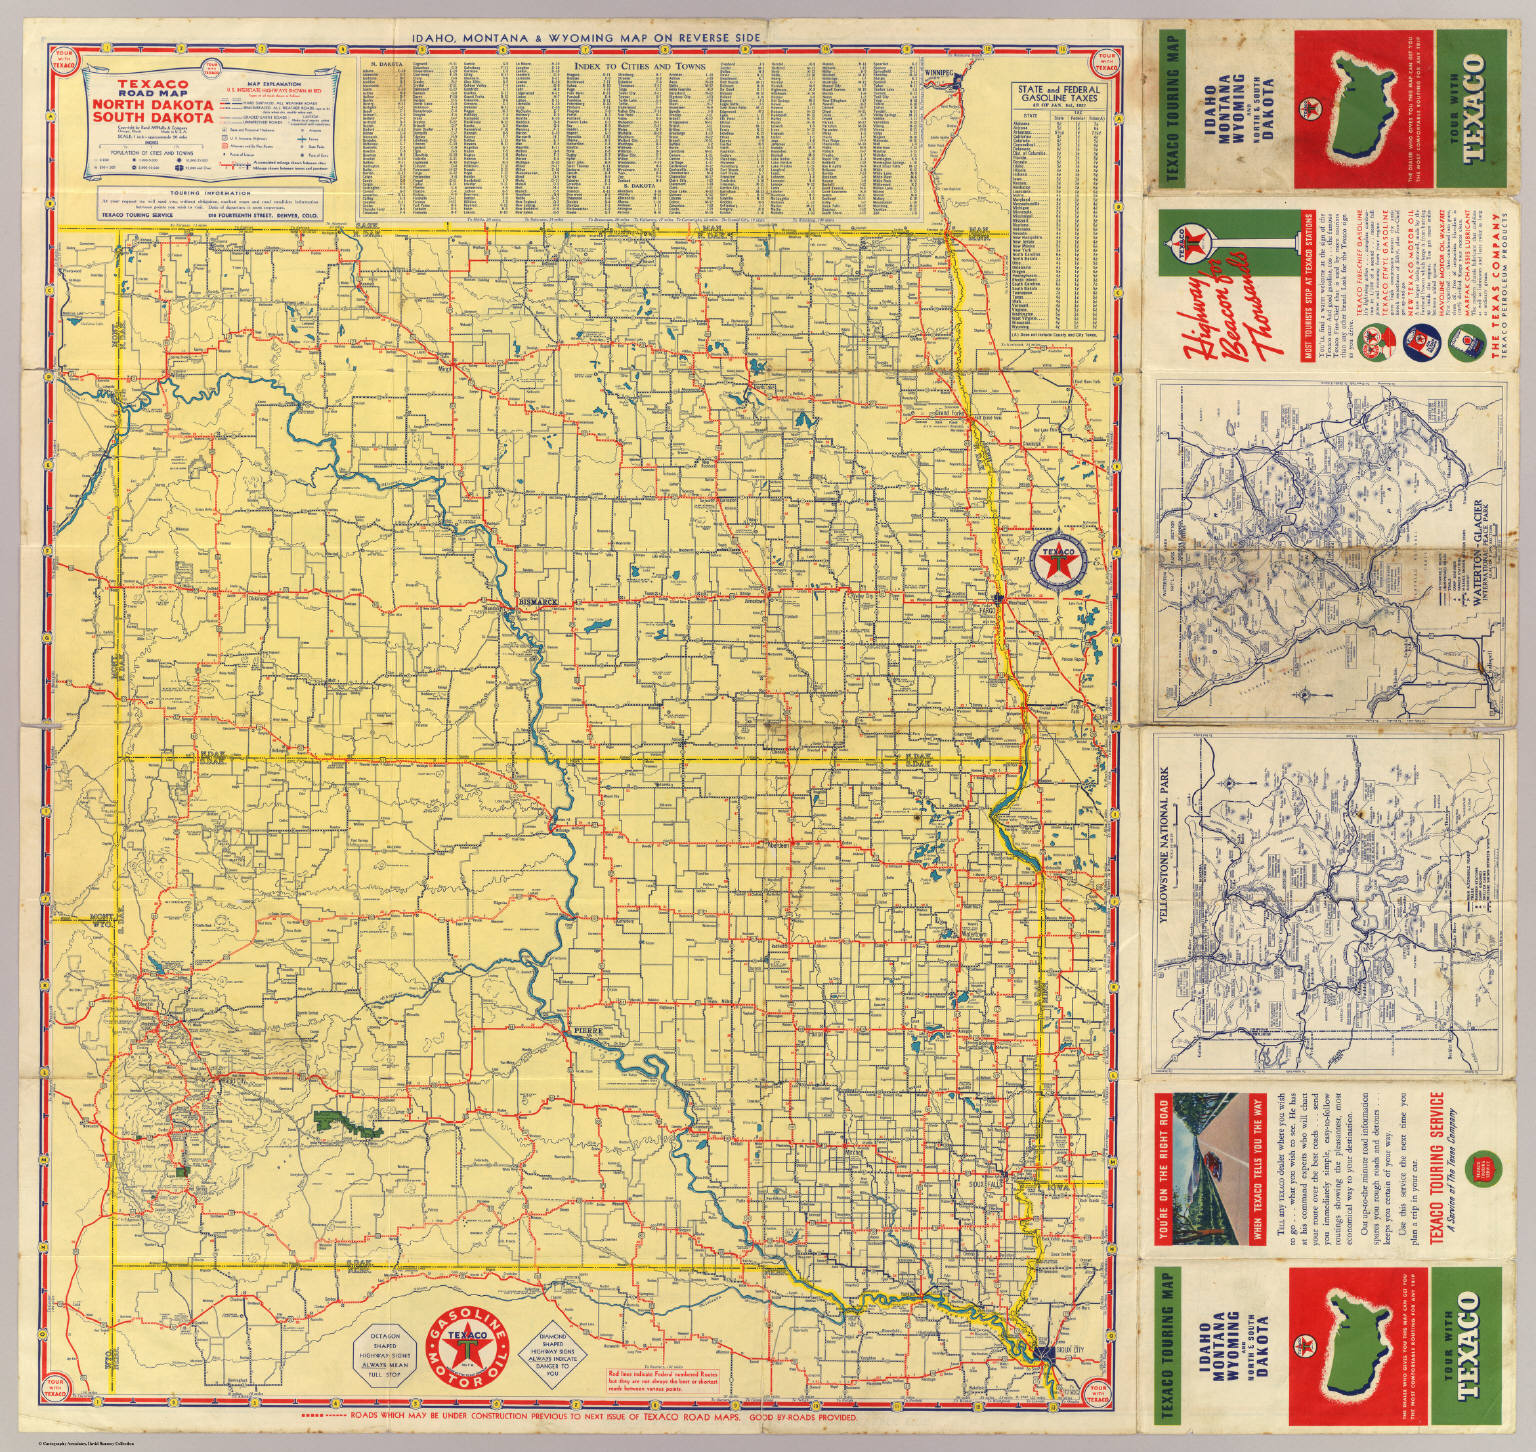 Road map N. & S. Dakota. - David Rumsey Historical Map ... Large Print Map Of North Dakota on print map of states, print map of ontario canada, print map of oklahoma city, print map of st. augustine, print map of philadelphia, print map of houston,